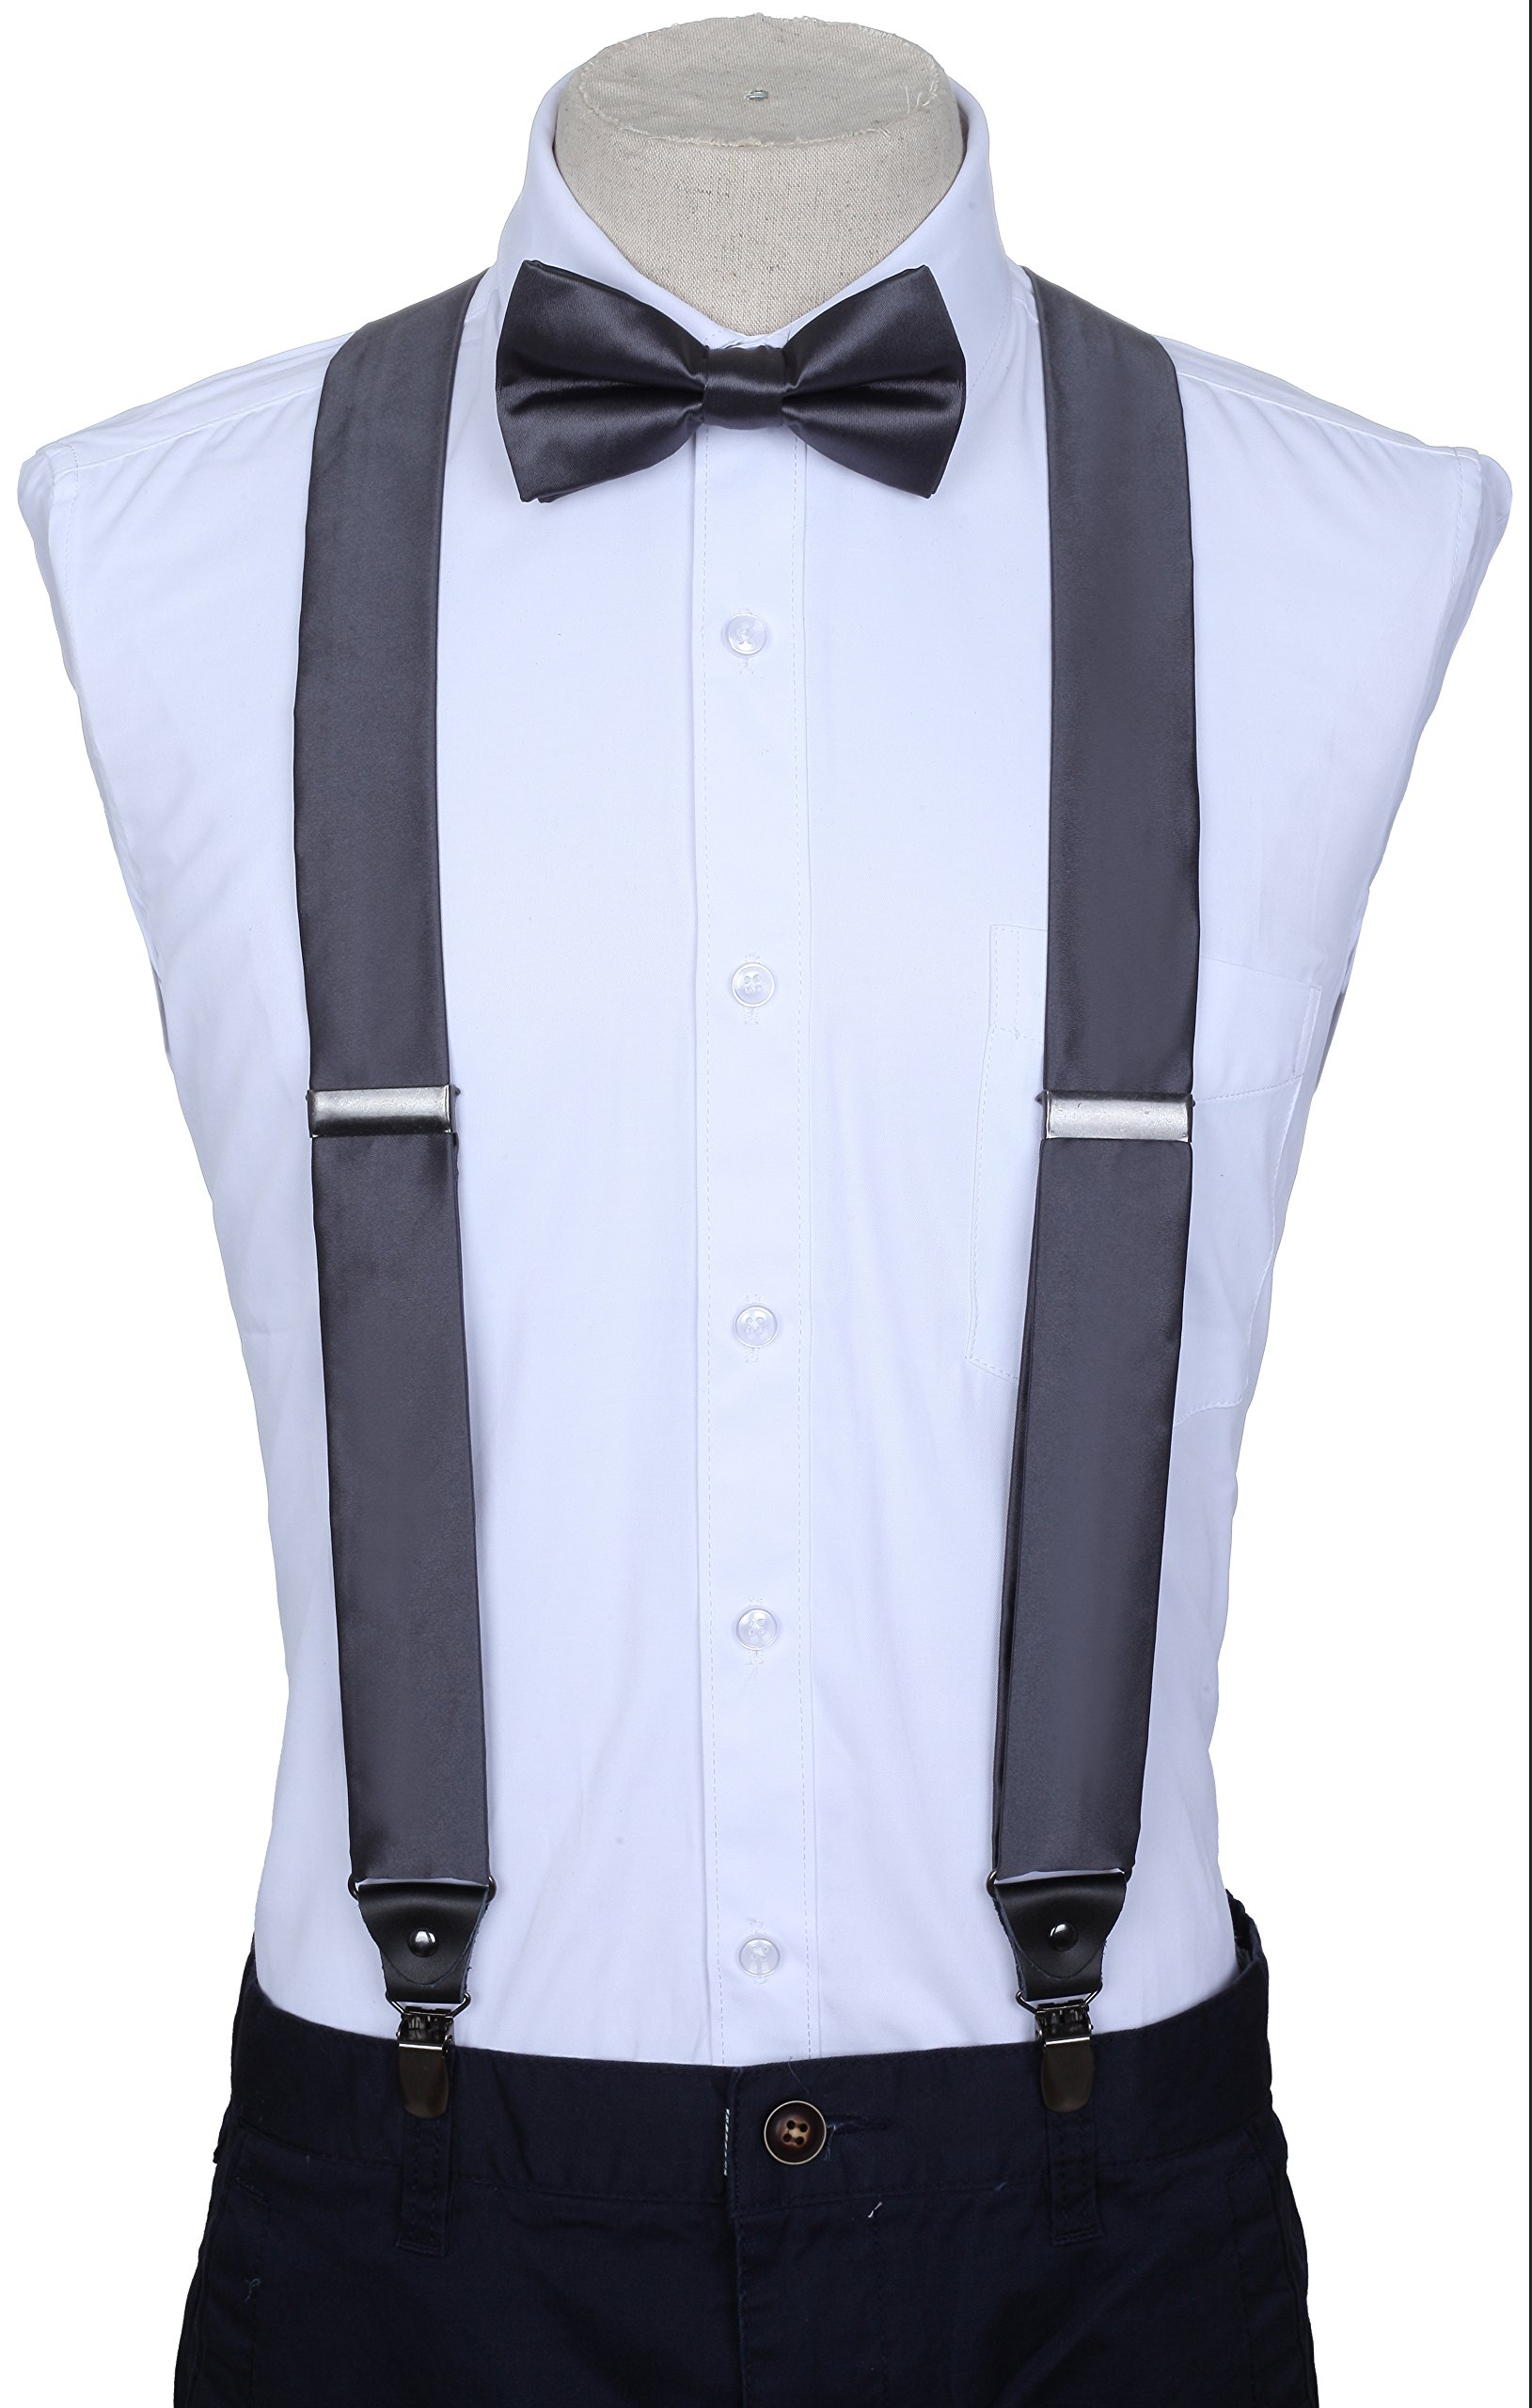 86ecb02a8 Get Quotations · Marino Suspenders and Bow Tie Set - Dress Suspenders For  Men - Silk-Like Pants